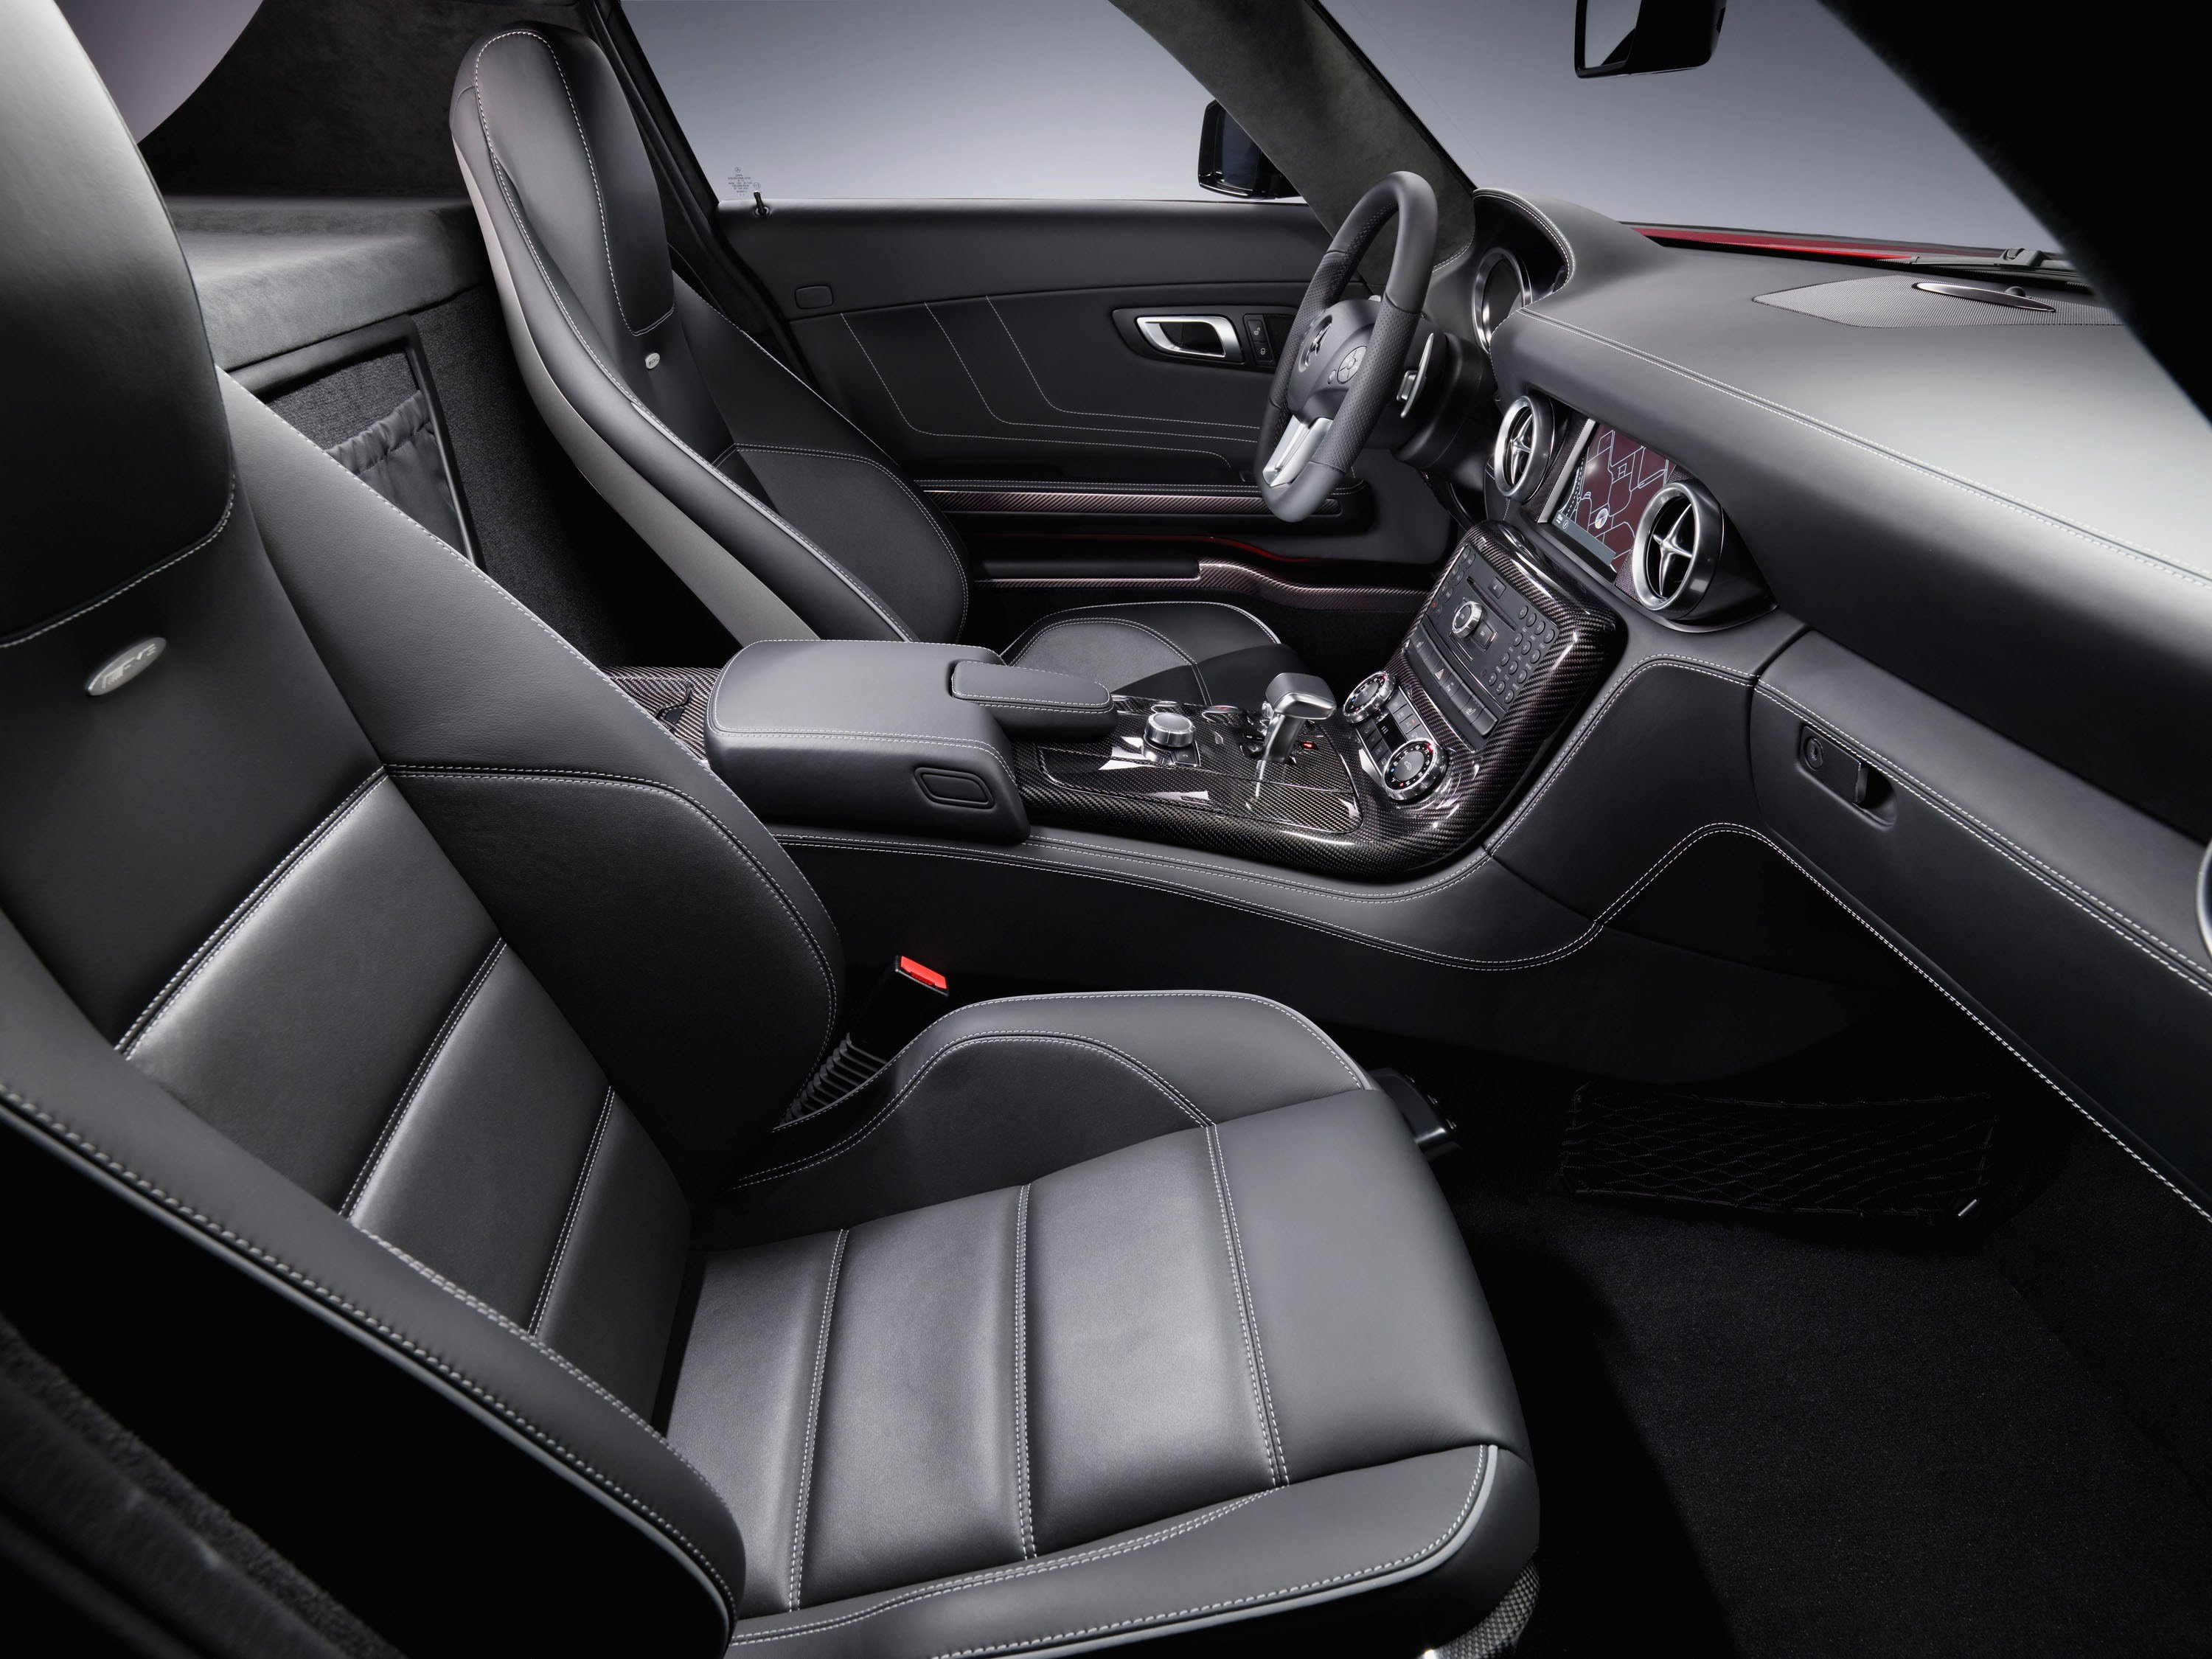 Latest The Interior Of The Mercedes Benz Sls Amg Free Download